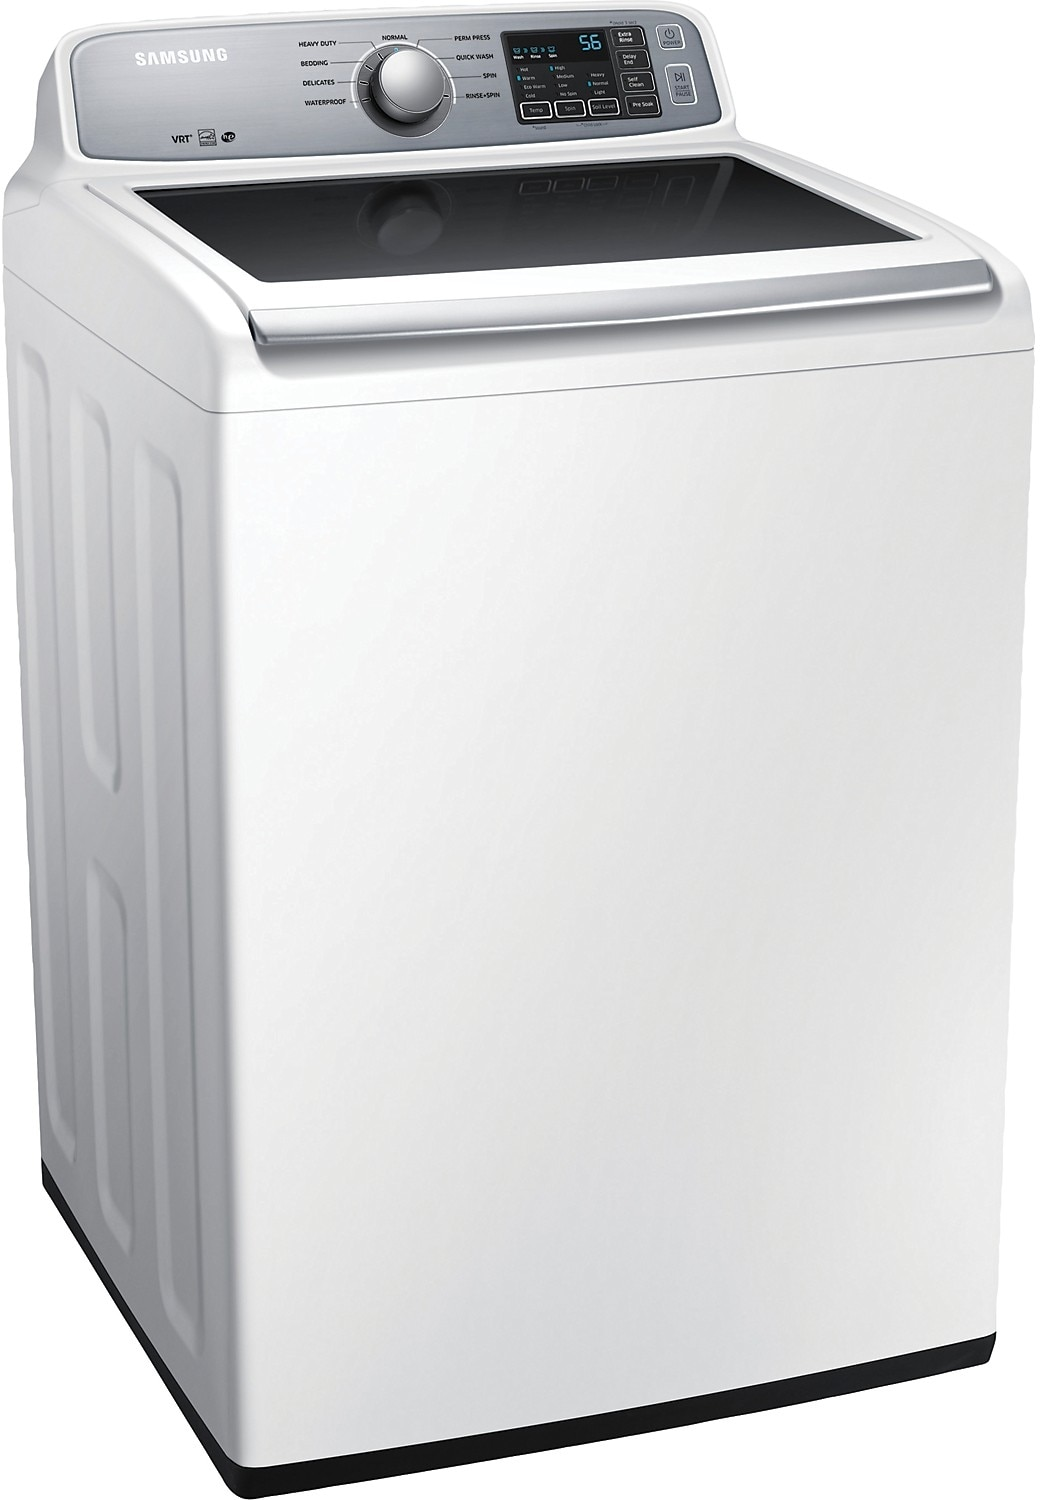 Largest Top Loading Washing Machine Samsung 52 Cu Ft Large Capacity Top Load Washer White The Brick